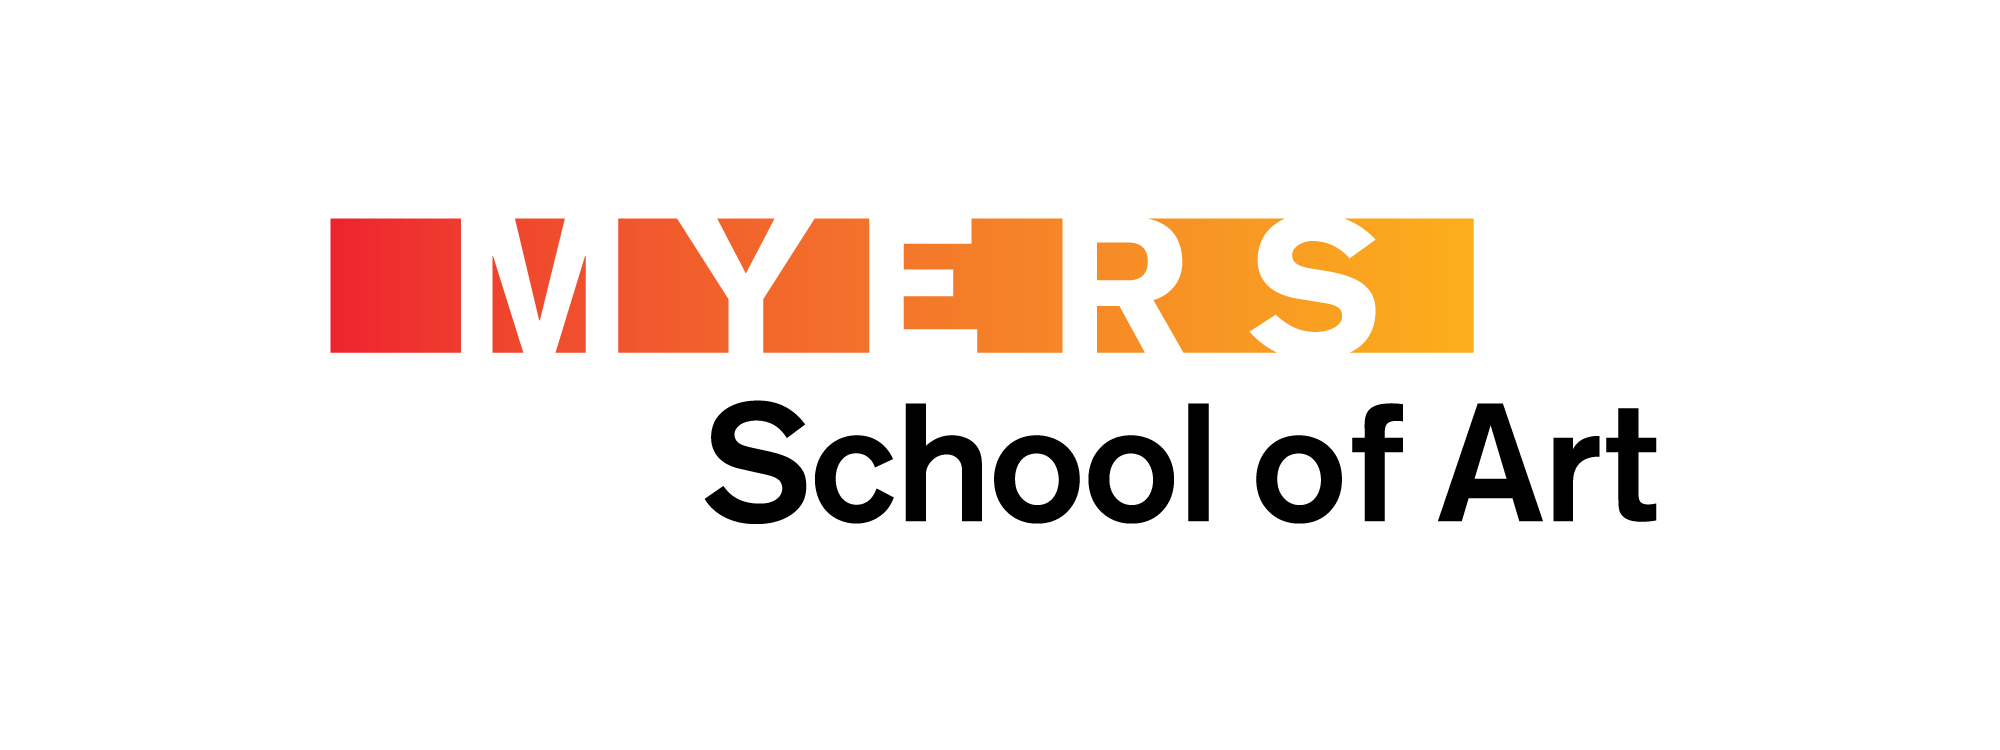 Myers-School-of-Art-logotype.jpg